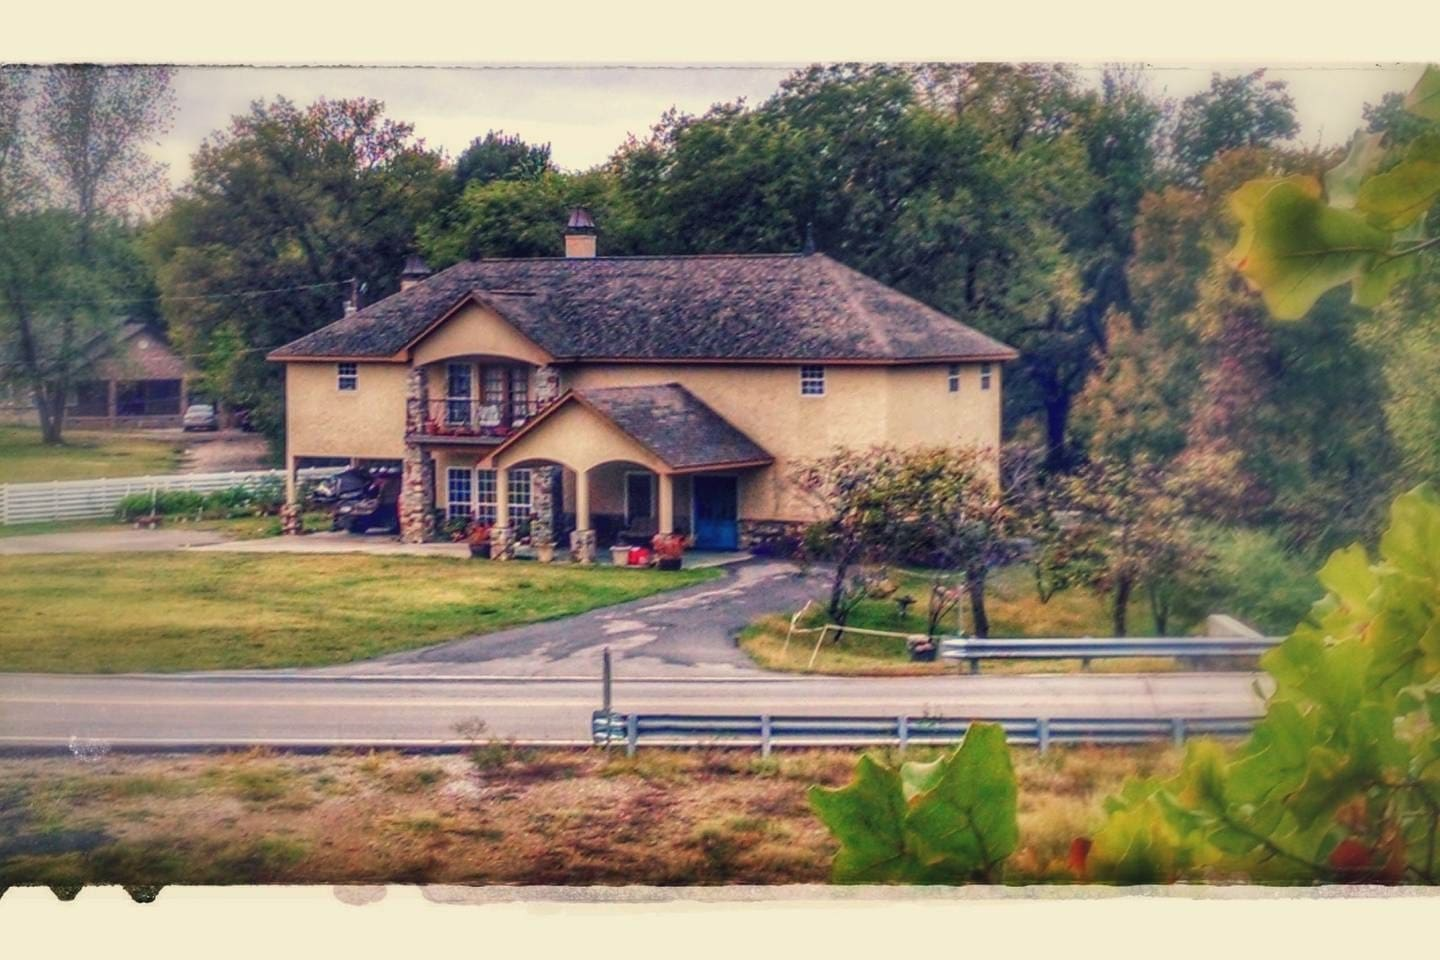 This is our home, my family built it when i was a teenager and Laura and I were married in the big backyard!